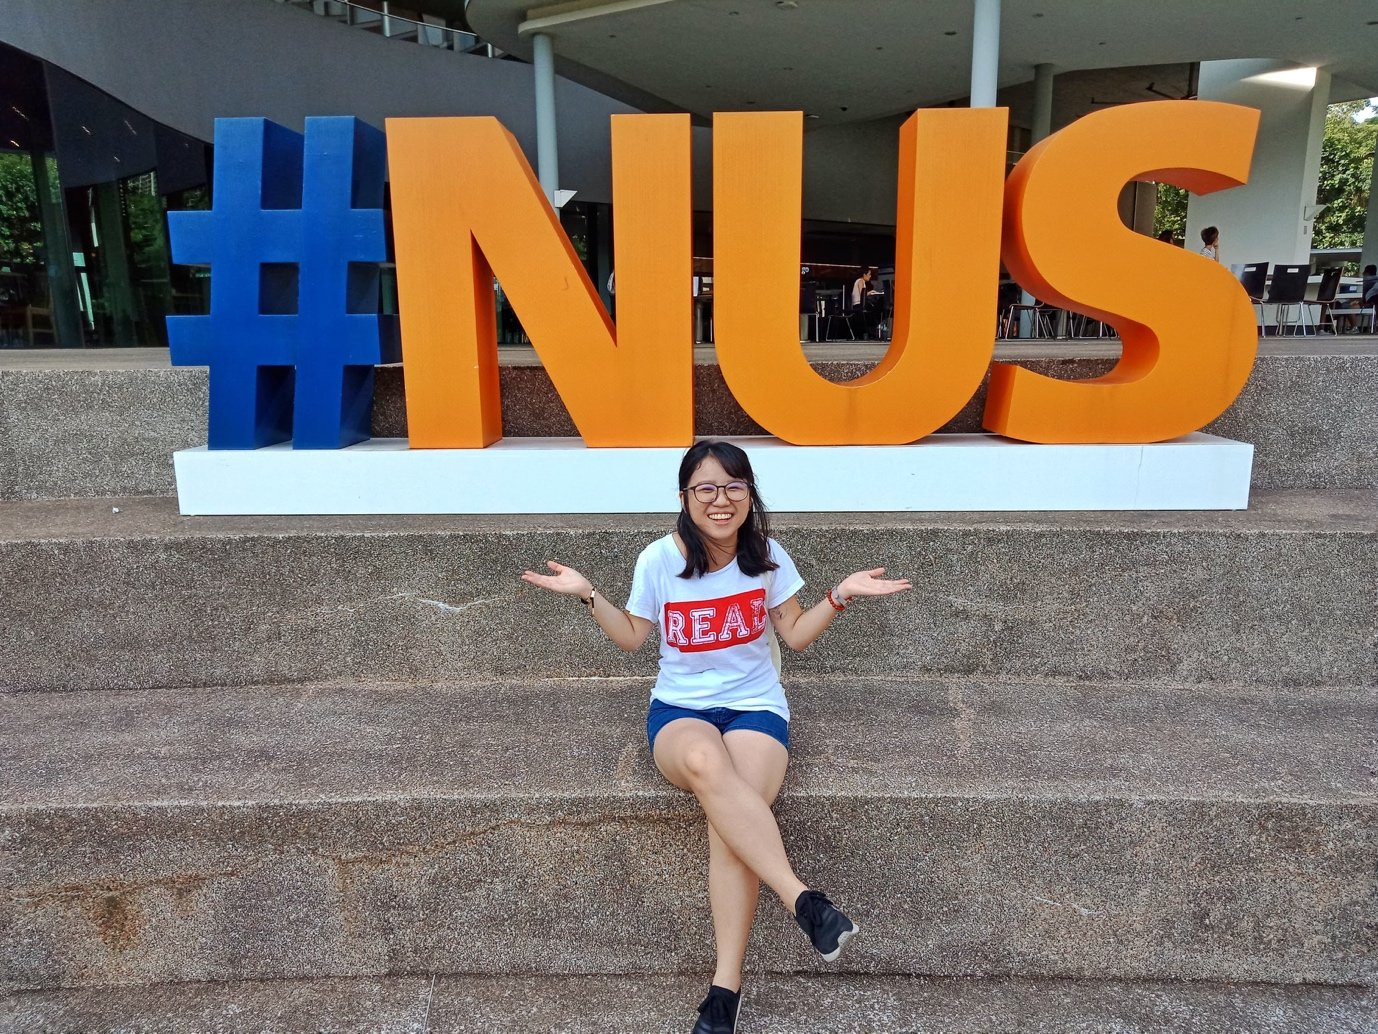 IMU Medical Biotechnology Student underwent a 3-month internship in the Biomedical Engineering Laboratory under the division of Department of Bioengineering in National University of Singapore (NUS)